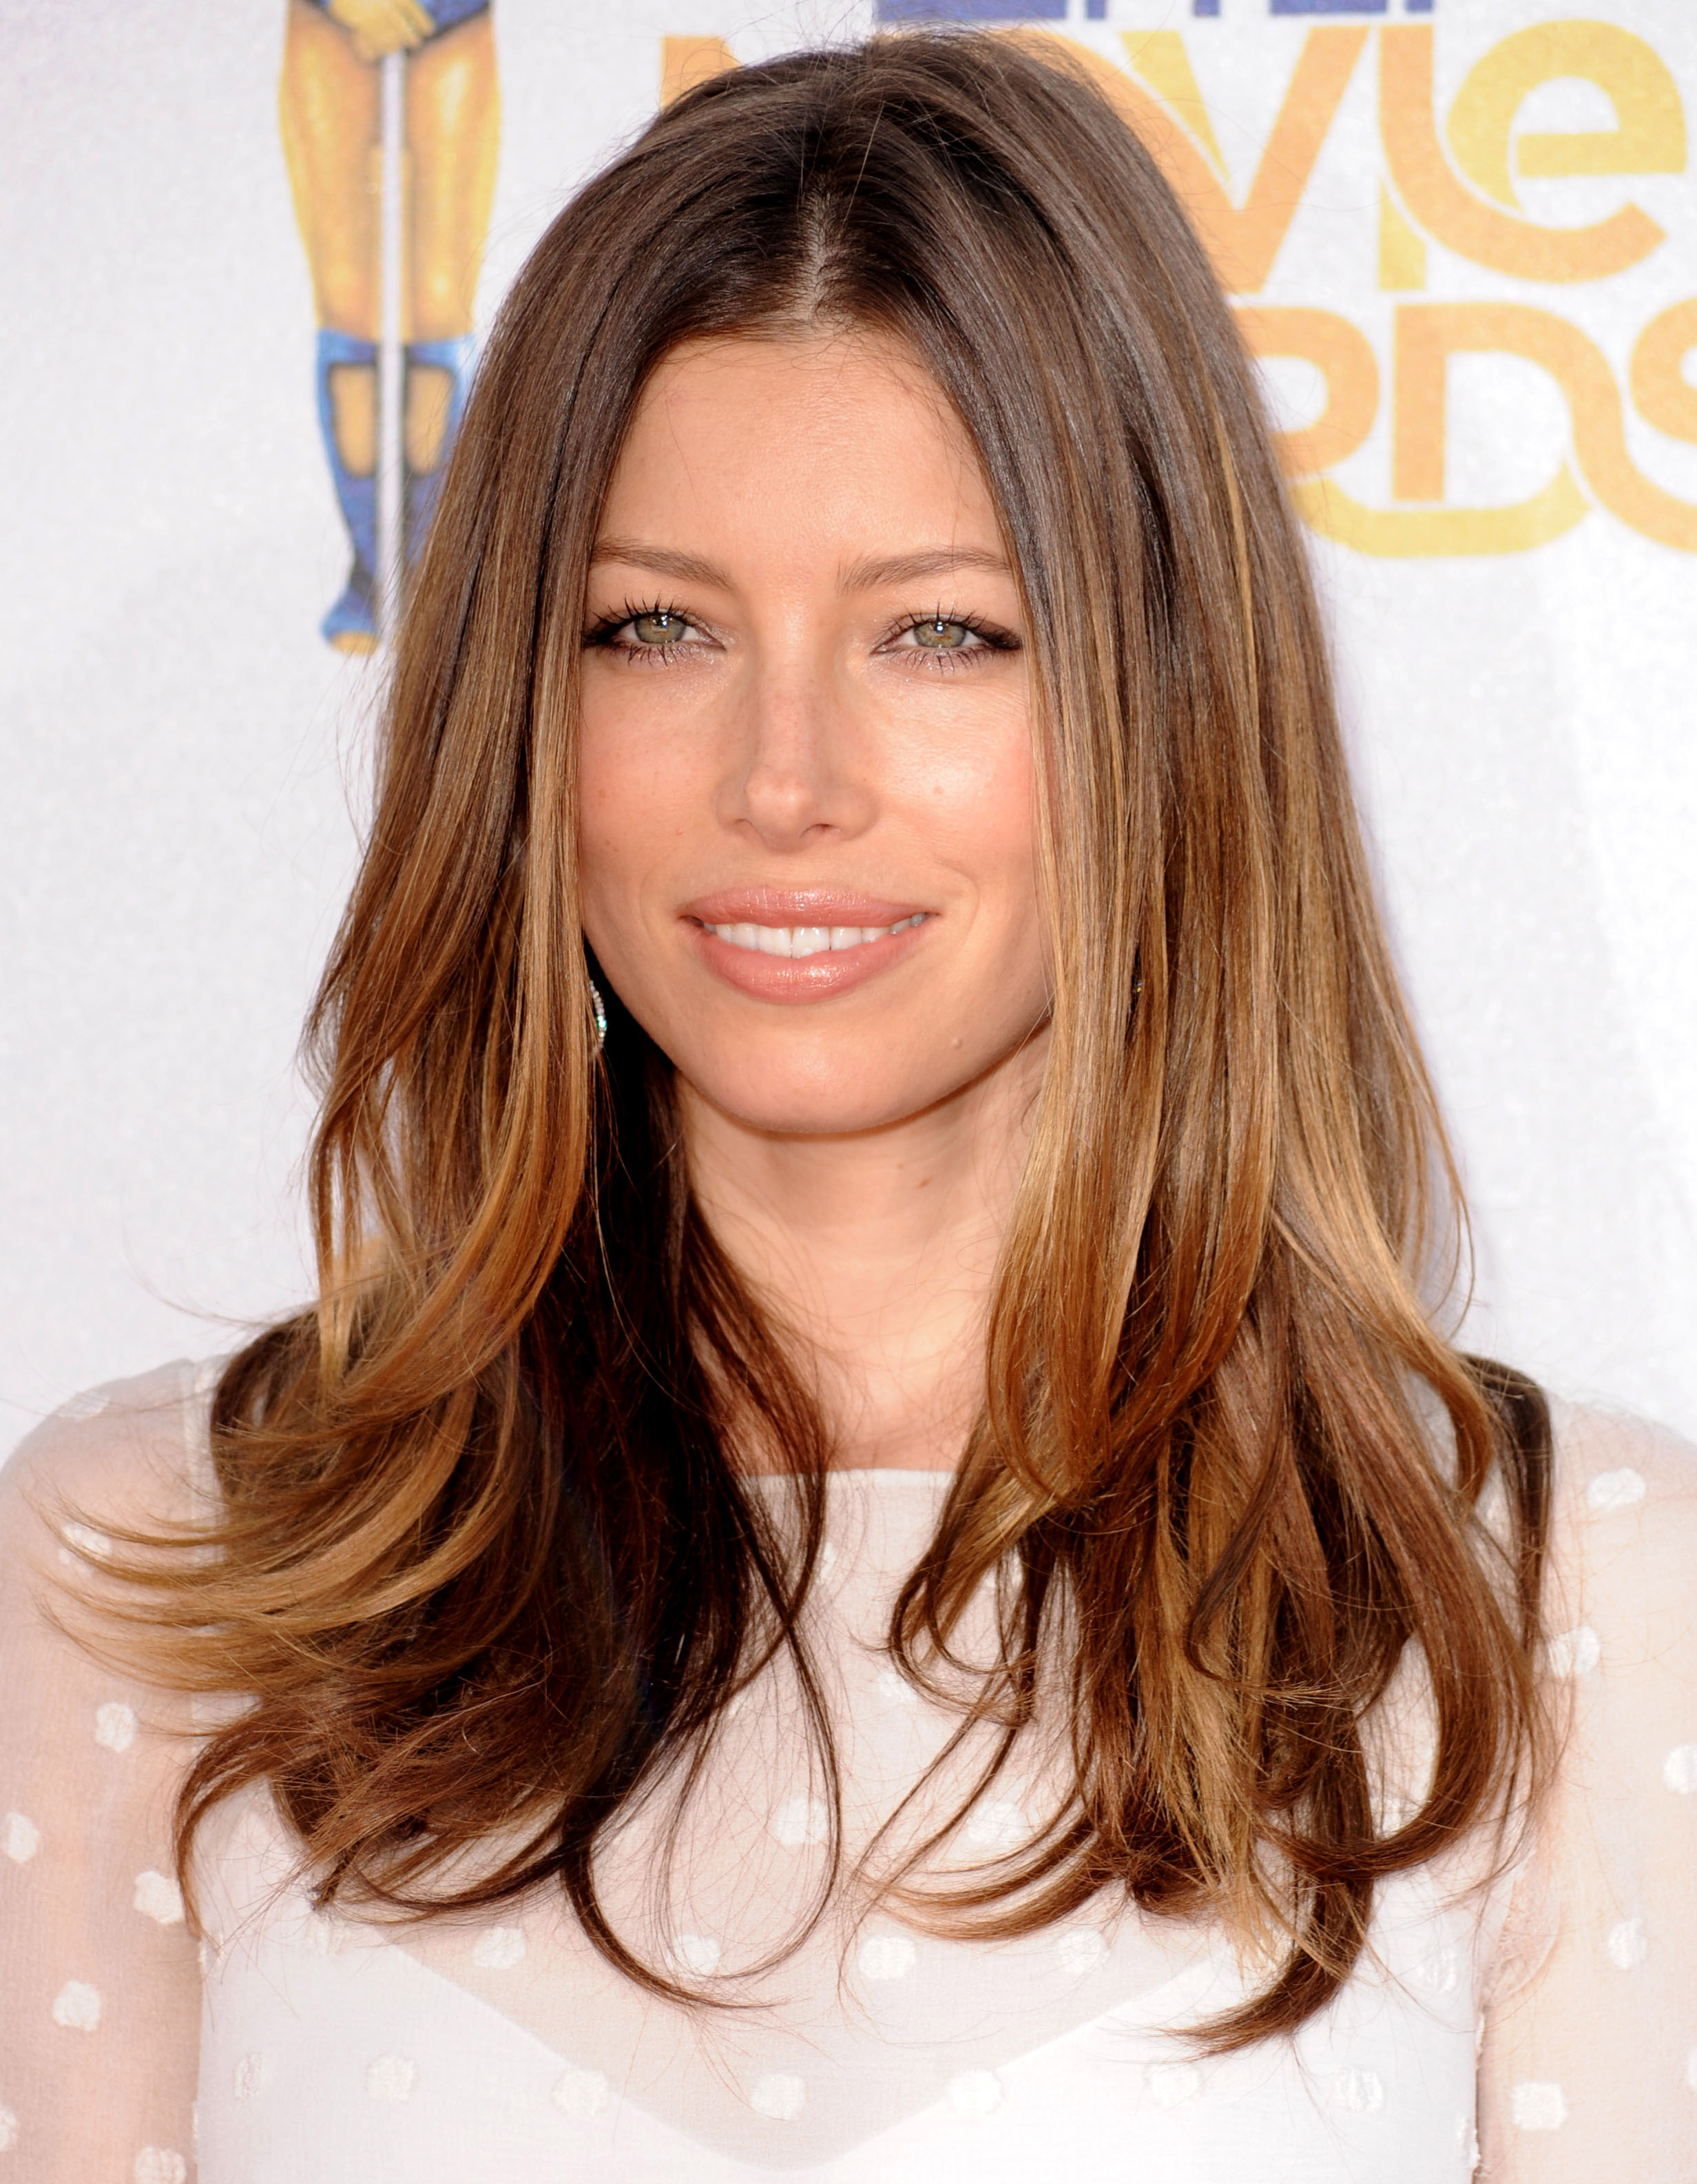 jessica biel 2016jessica biel instagram, jessica biel 2016, jessica biel 2017, jessica biel wikipedia, jessica biel young, jessica biel кинопоиск, jessica biel justin timberlake wedding, jessica biel films, jessica biel фильмы, jessica biel son, jessica biel fan site, jessica biel listal, jessica biel 2015, jessica biel hair, jessica biel mad about the boy, jessica biel filmography, jessica biel theplace, jessica biel blade 3, jessica biel movie, jessica biel scarlett johansson